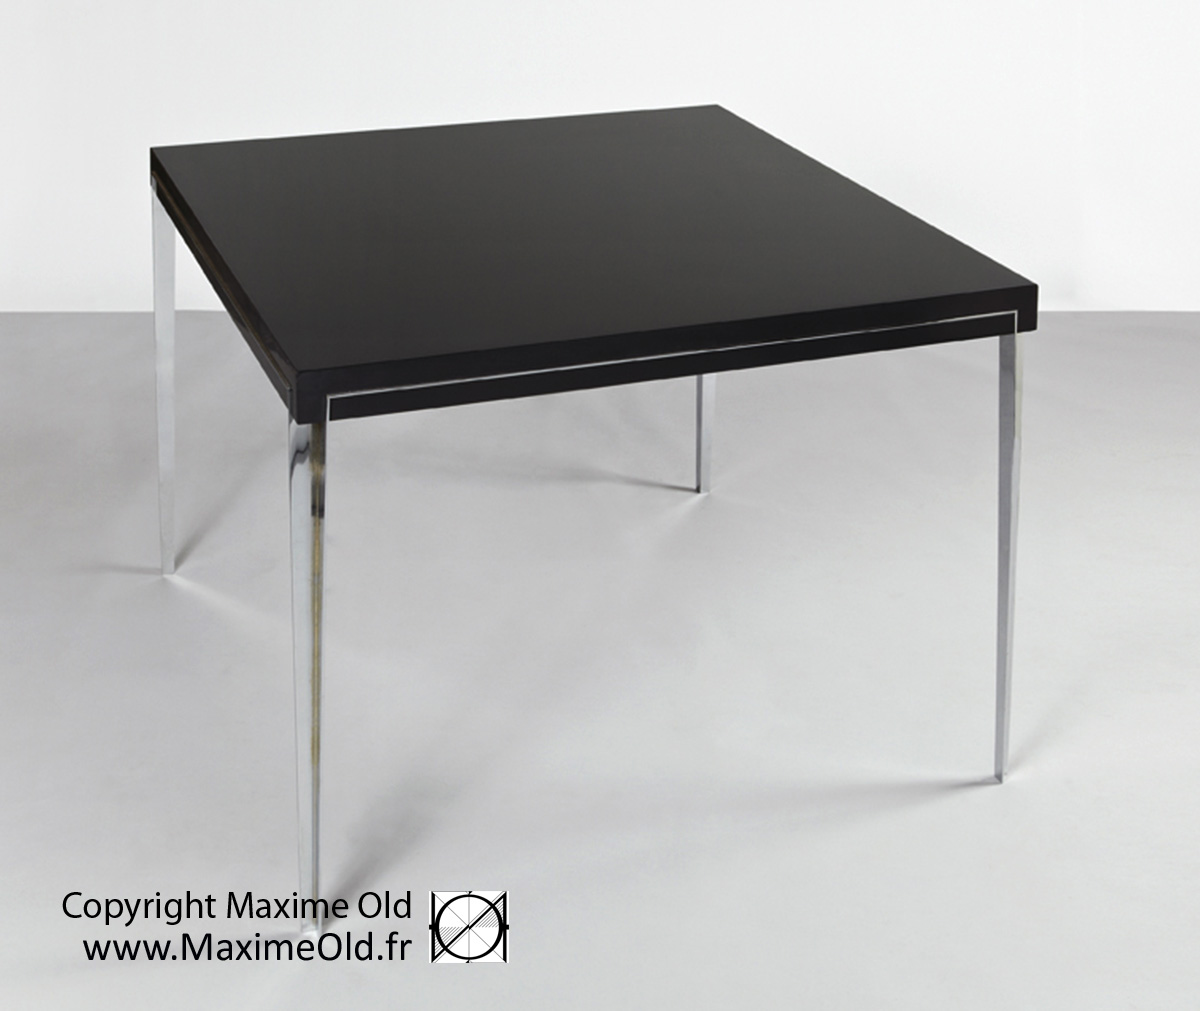 Maxime Old Tables Desks: Maxime Old Paquebot France Onyx Table